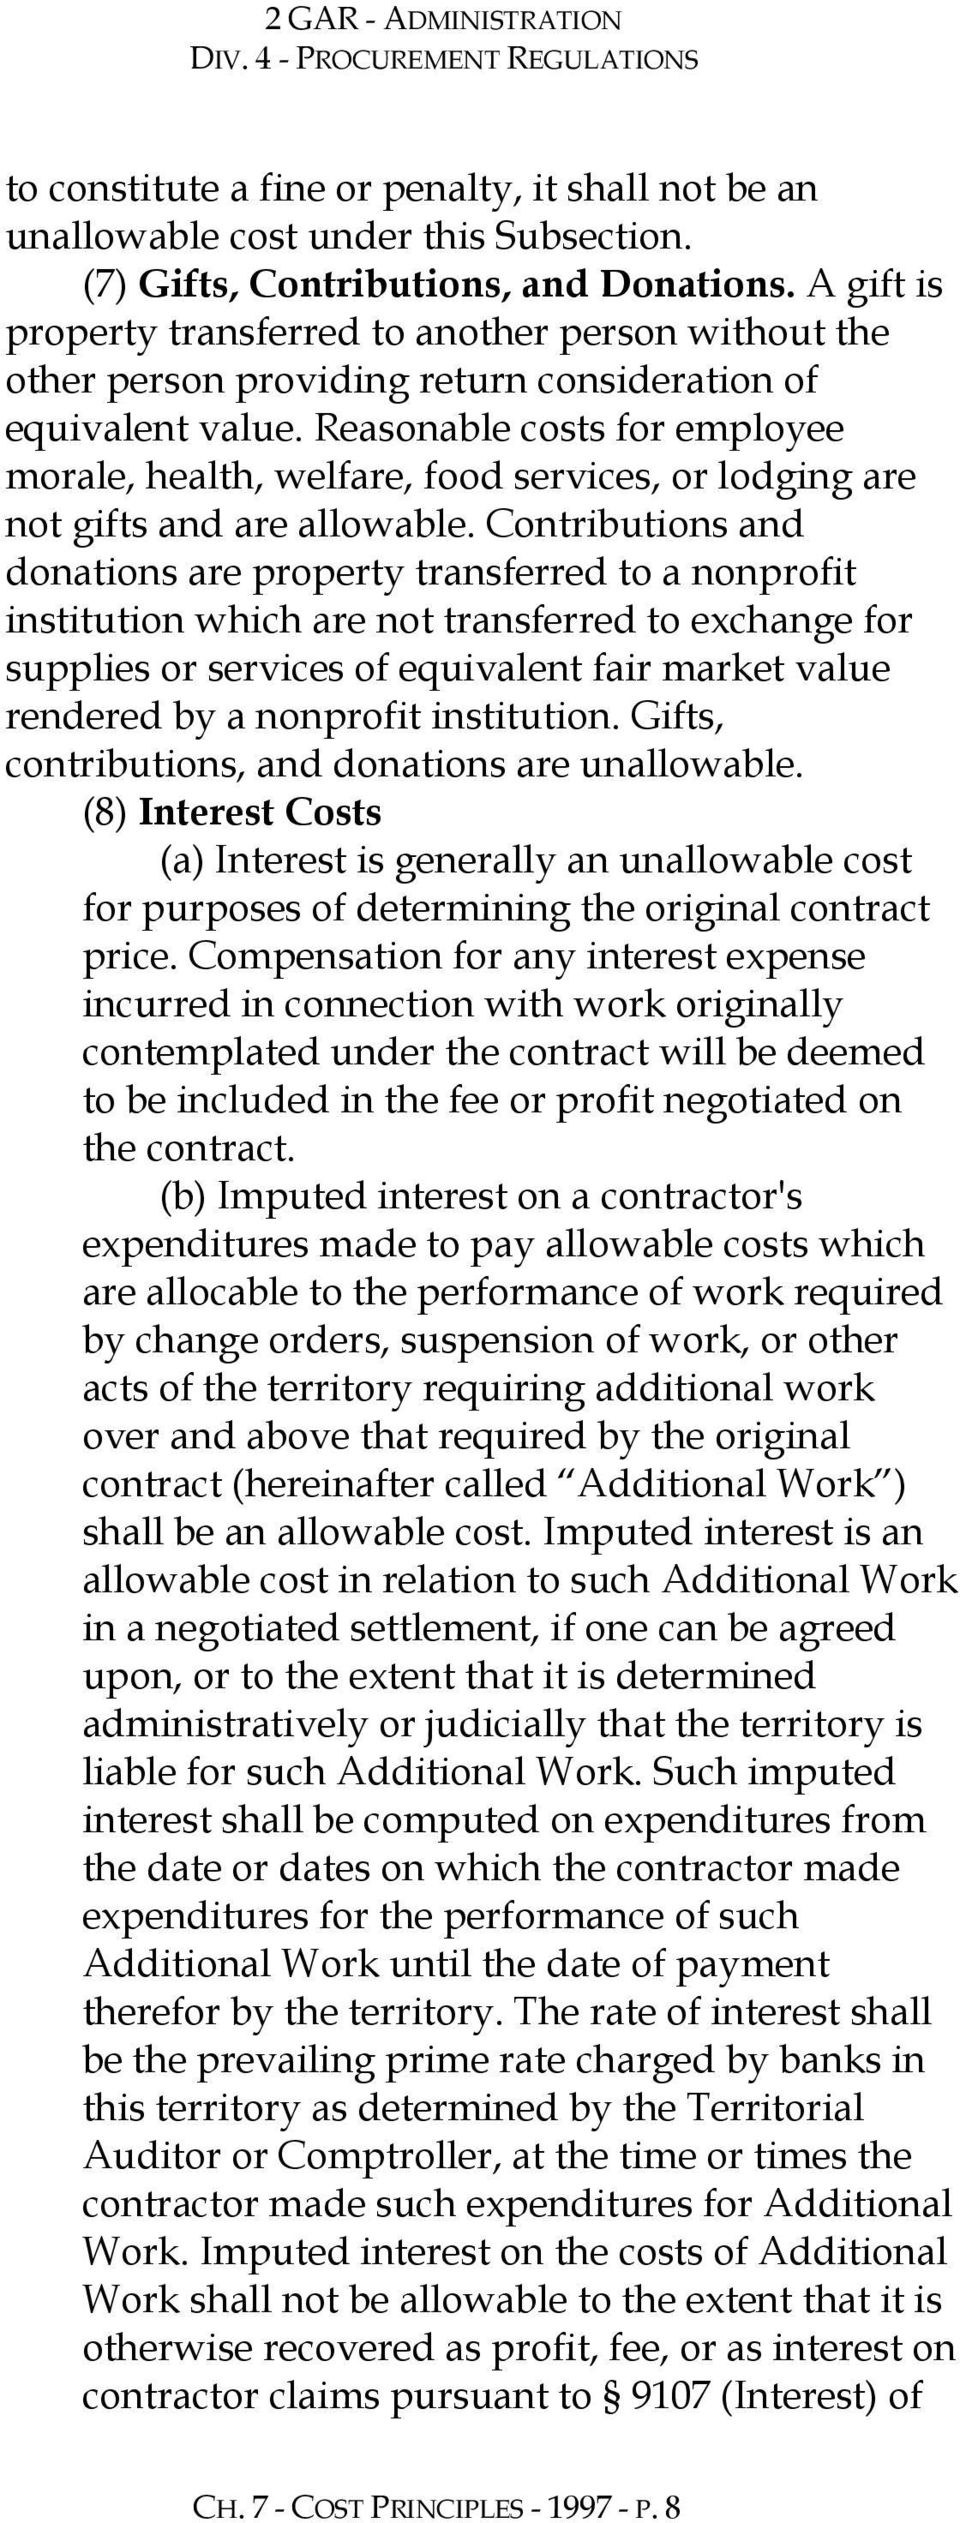 Reasonable costs for employee morale, health, welfare, food services, or lodging are not gifts and are allowable.